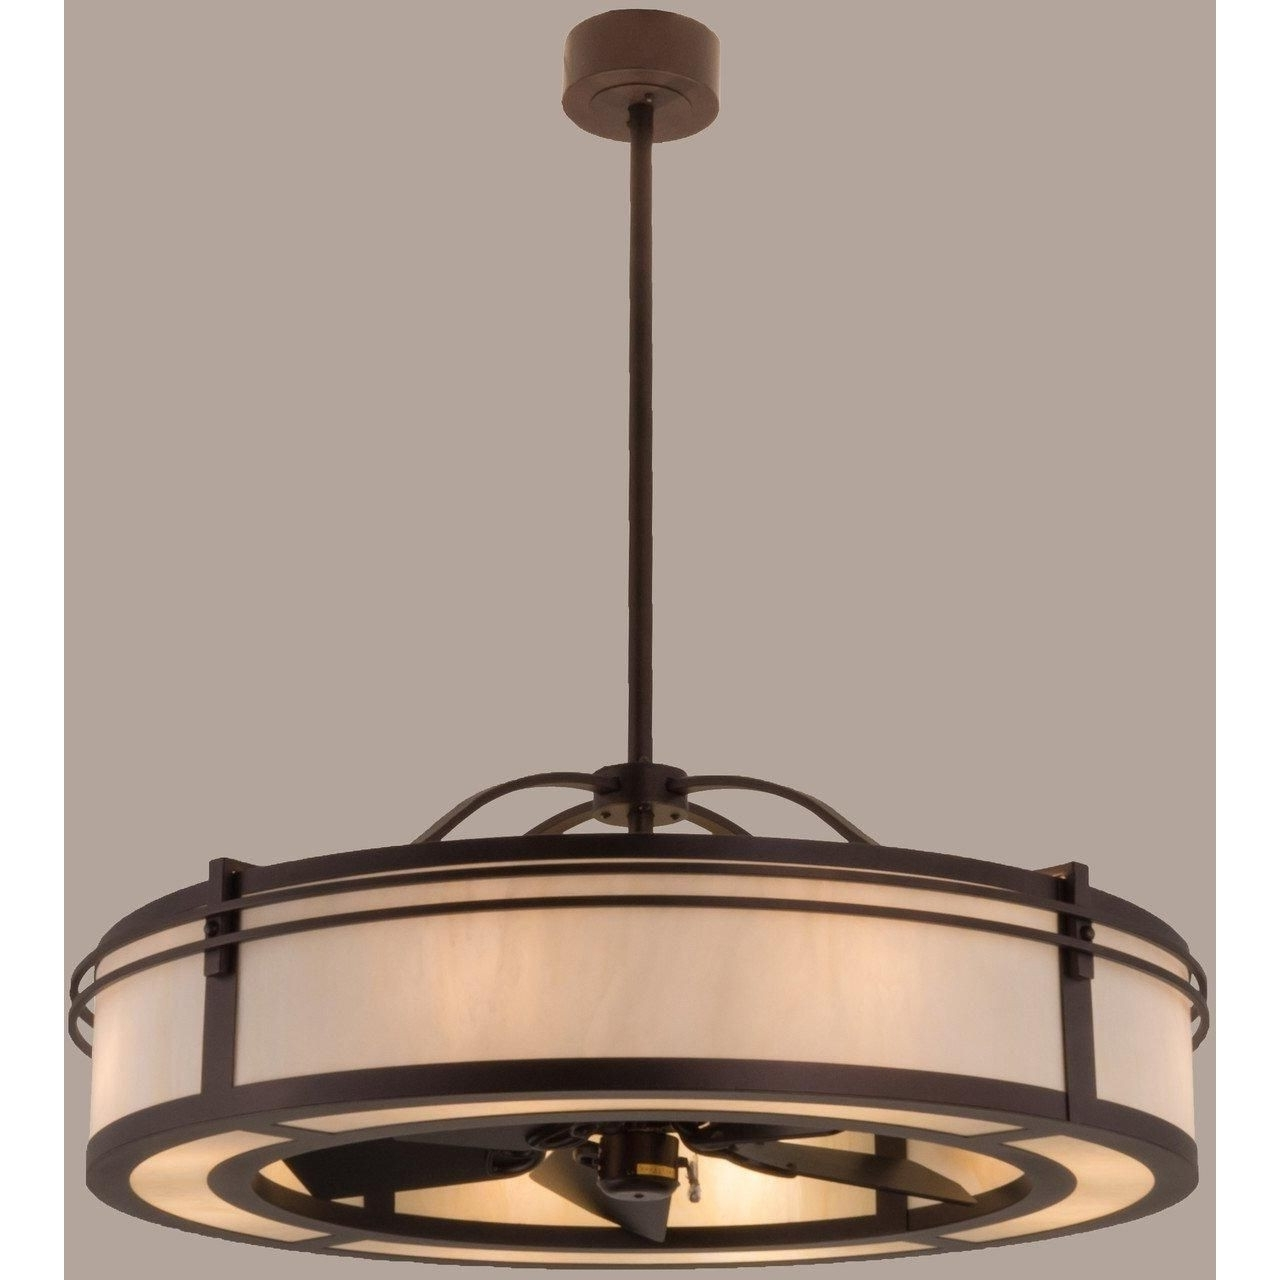 Kmart Outdoor Ceiling Fans Pertaining To Popular Outdoor Lights Kmart Best Of Smythe Craftsman Chandel Air Pendant (View 8 of 20)